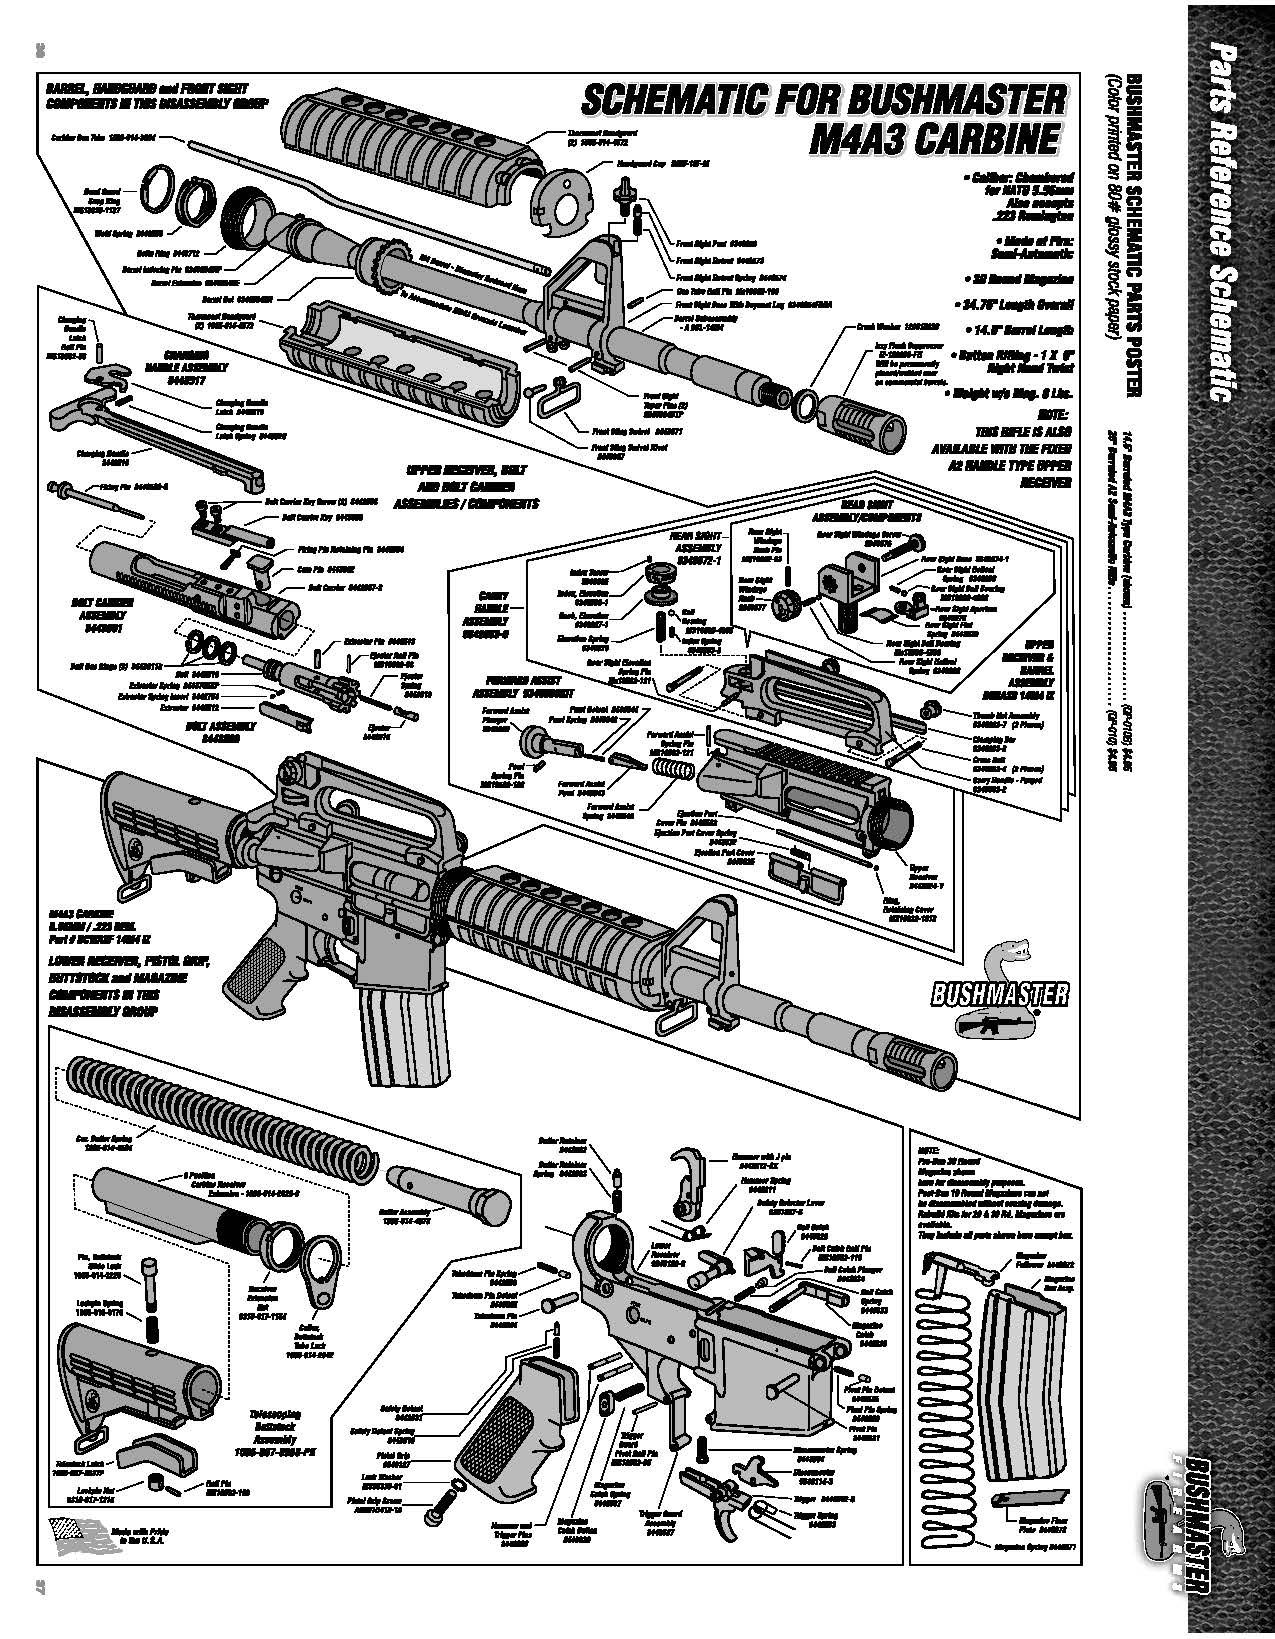 medium resolution of ar 15 schematic parts poster wiring diagram perfomancear 15 parts schematic bushmaster pg